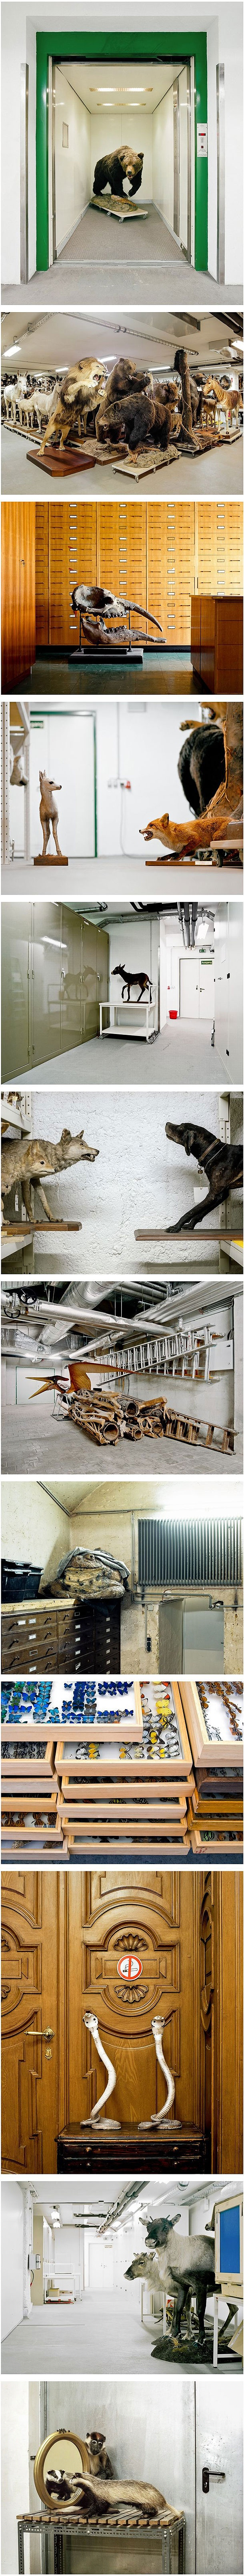 Taxidermied Animals Put On Secret Display By Klaus Pichler